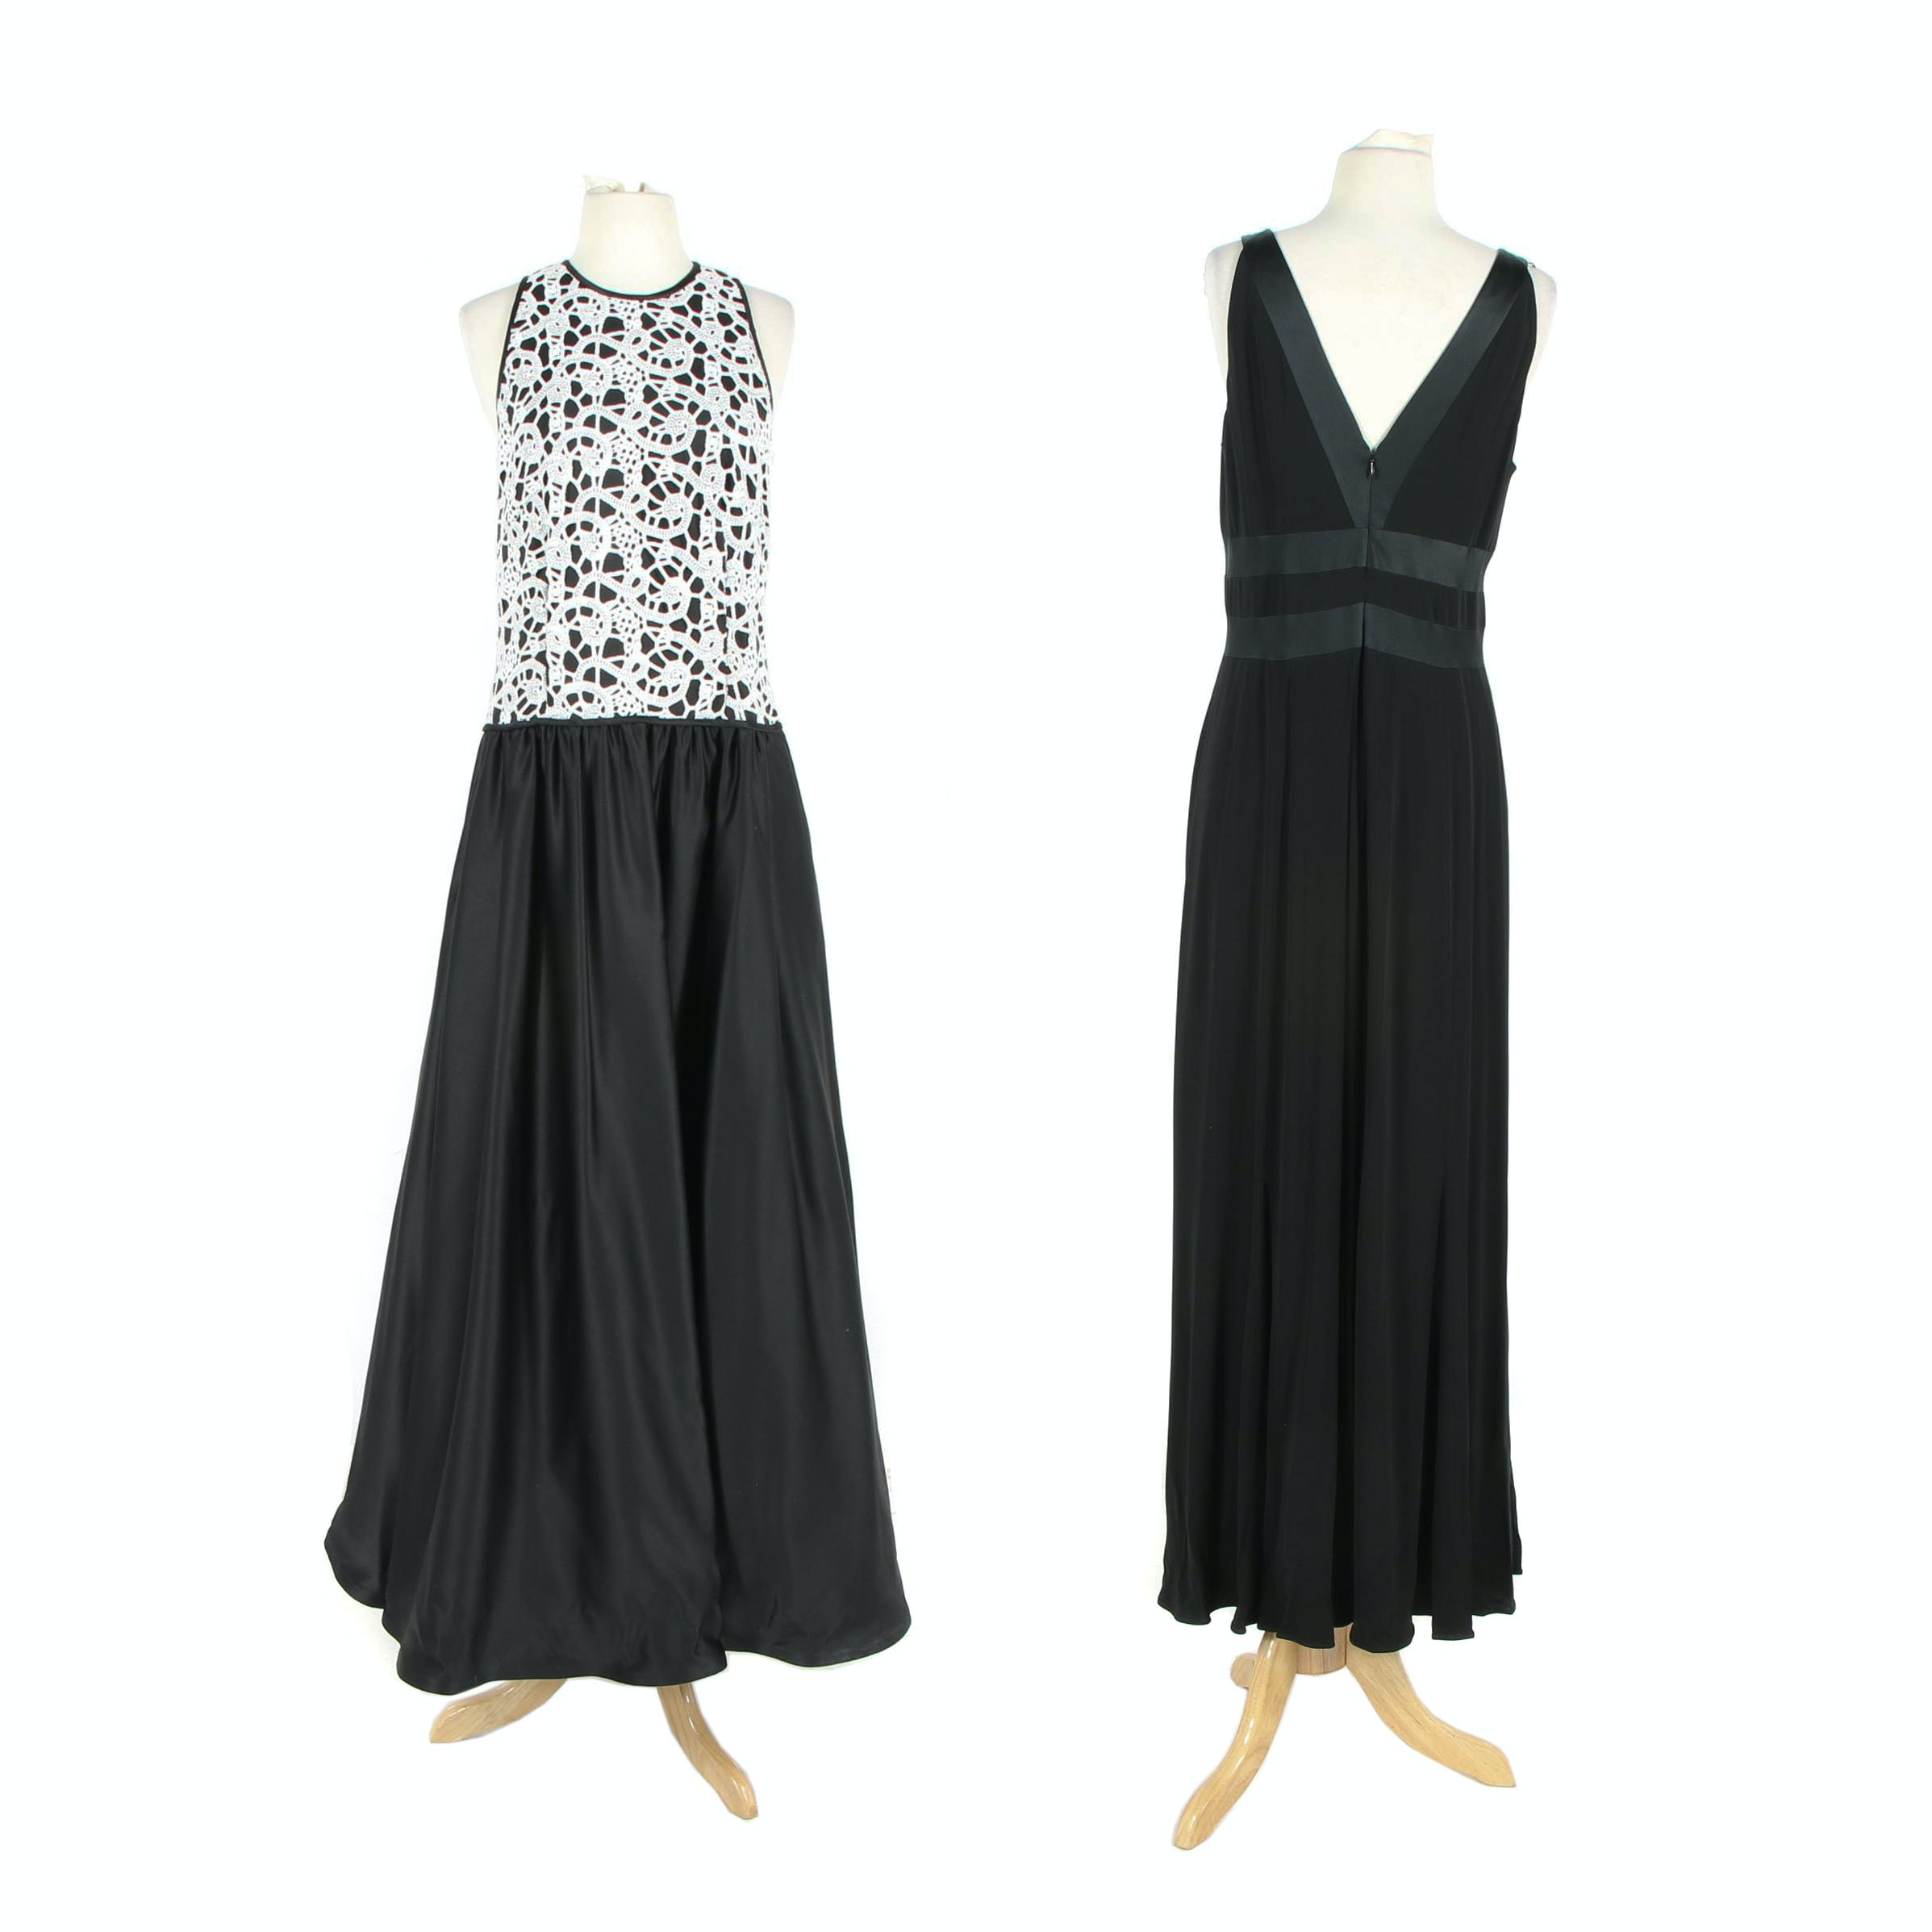 Women's Tadashi Collection and Kay Unger New York Sleeveless Evening Dresses